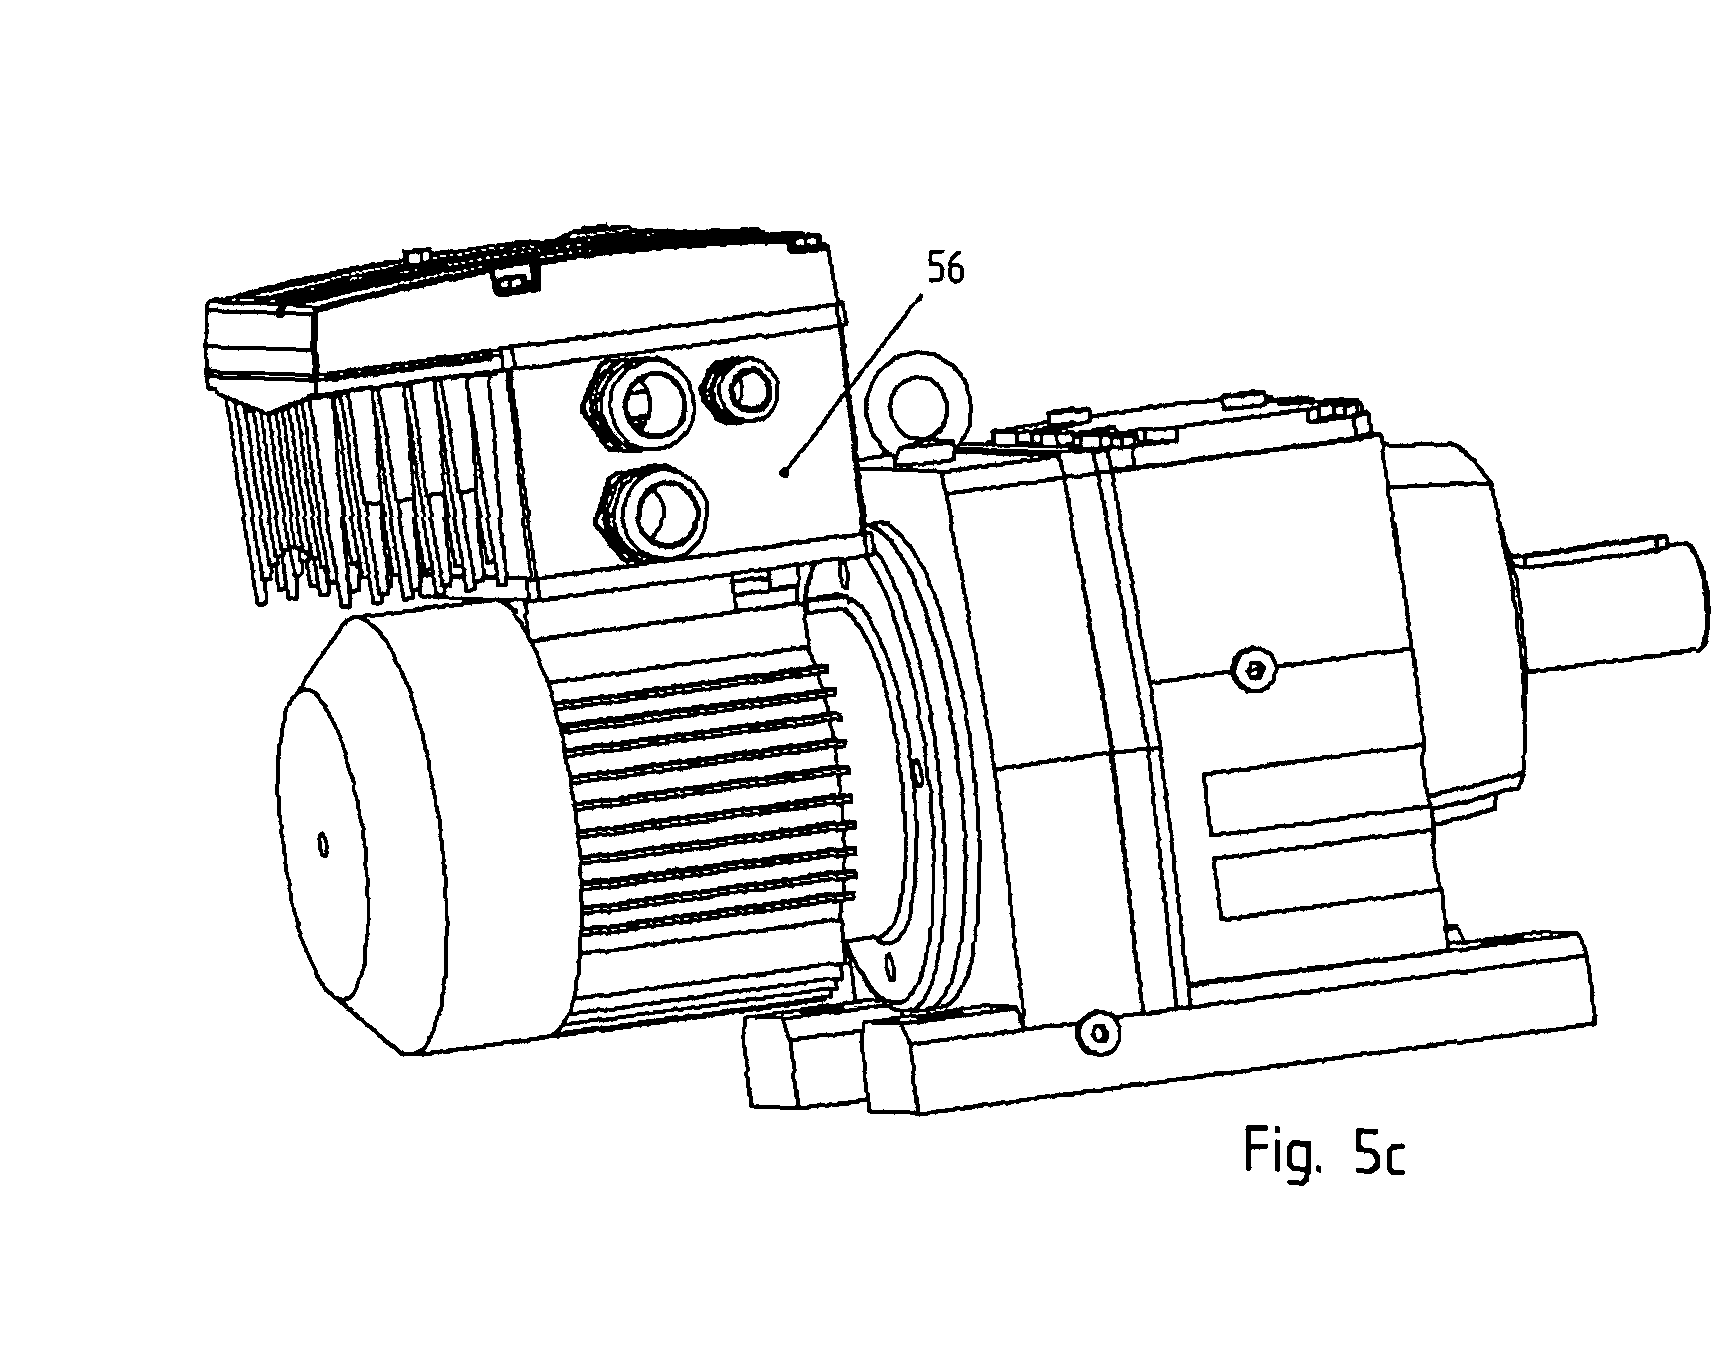 Patent Ep1237260a2 Converter Motor And Drive System